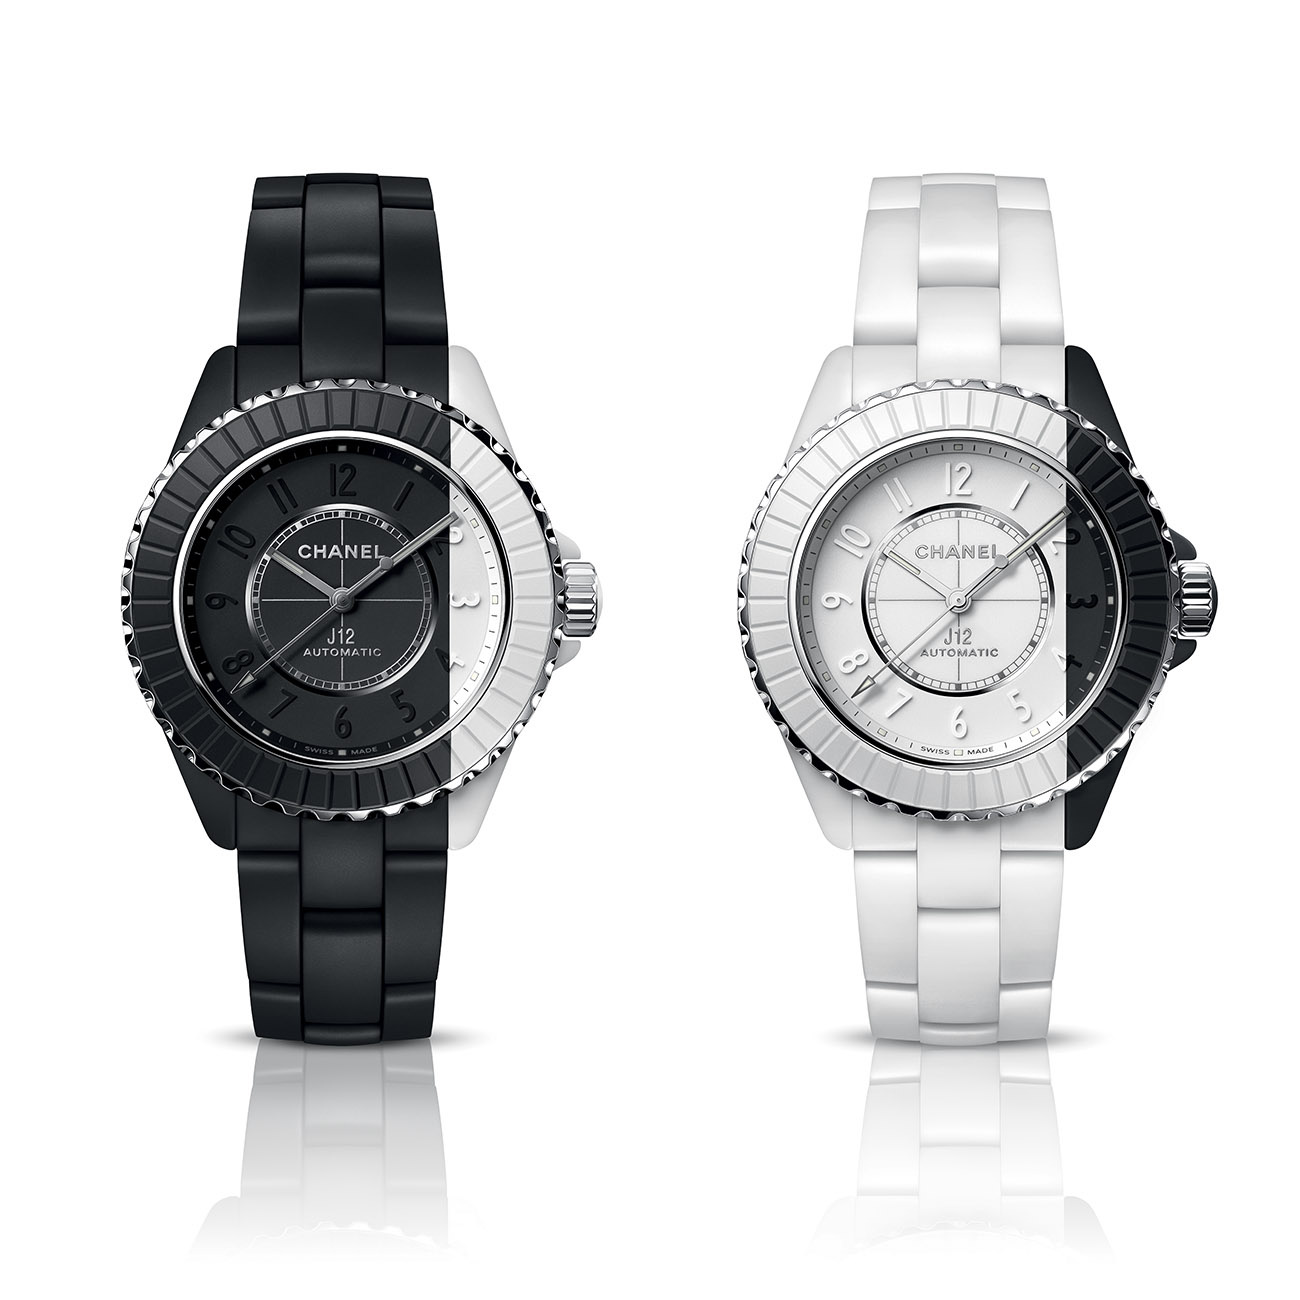 chanel only watch 2021